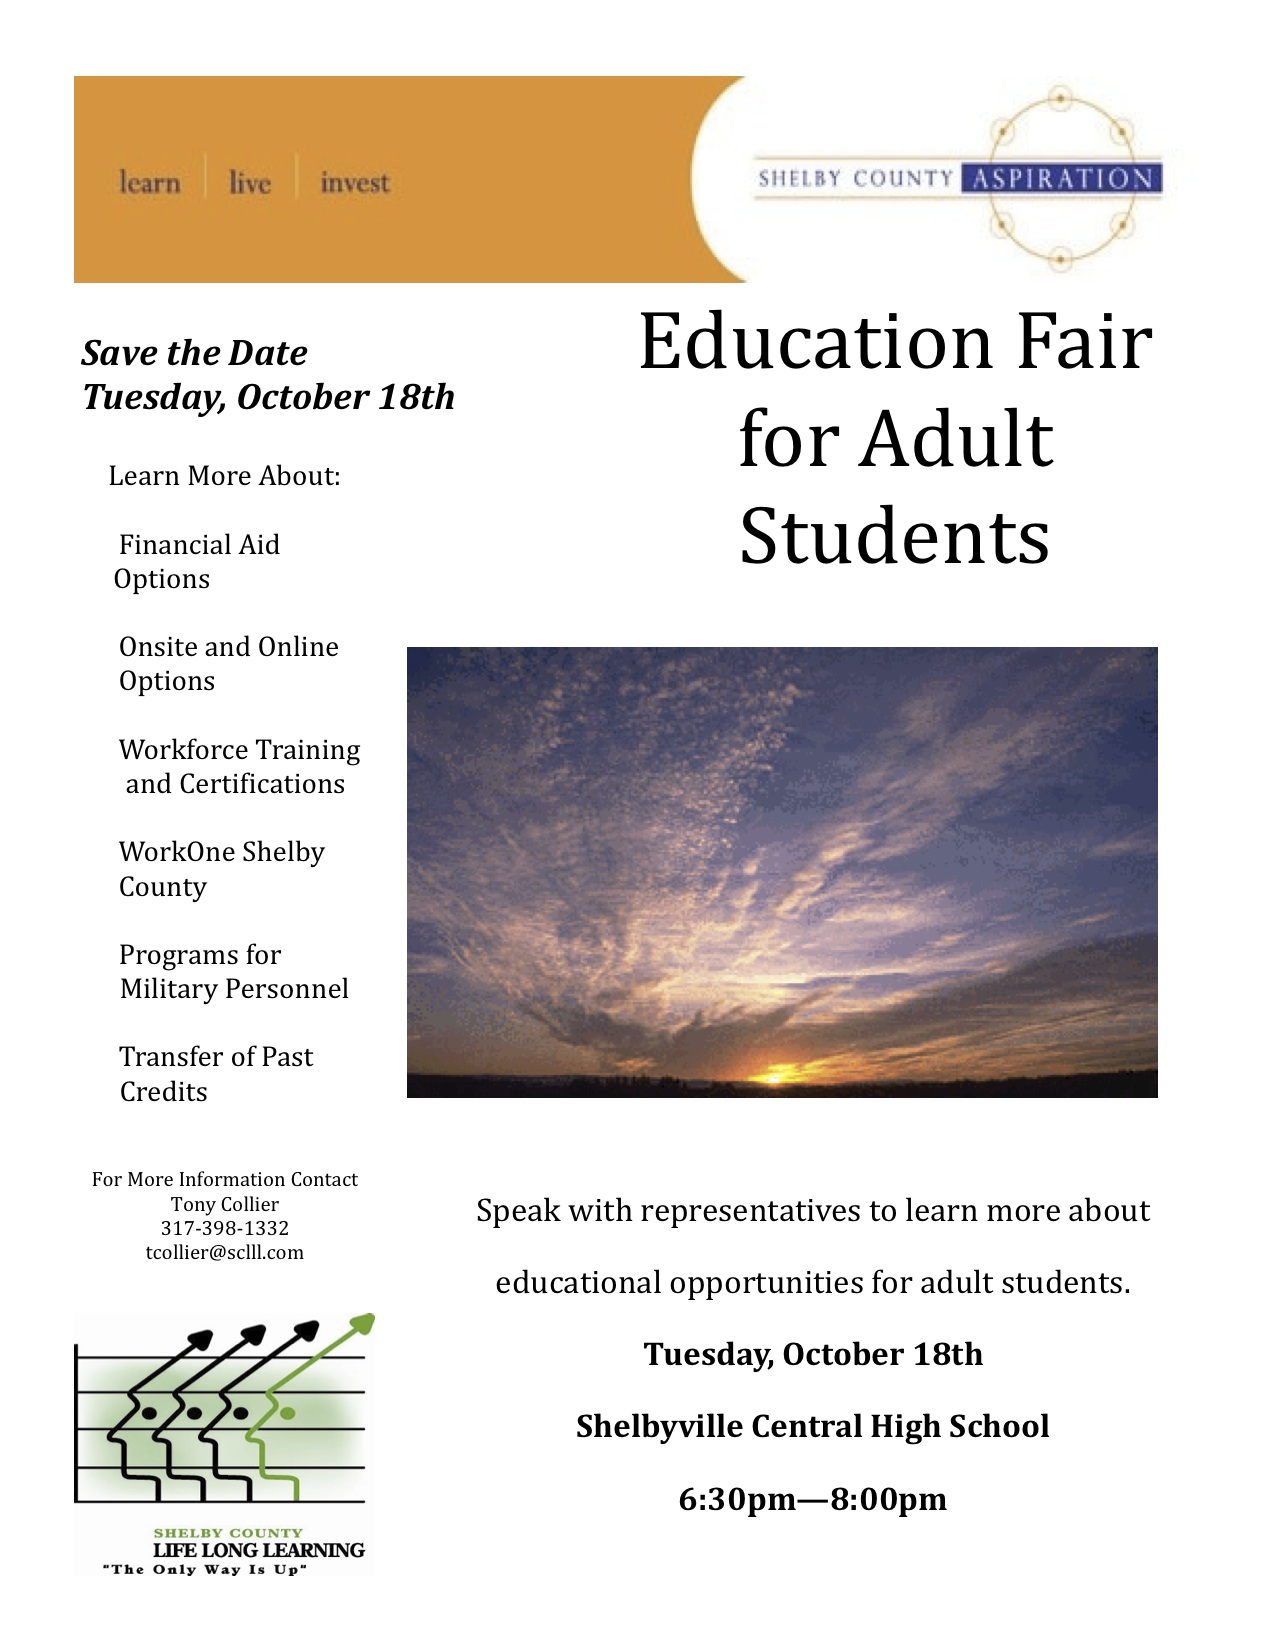 Shelby County Education Fair Flier